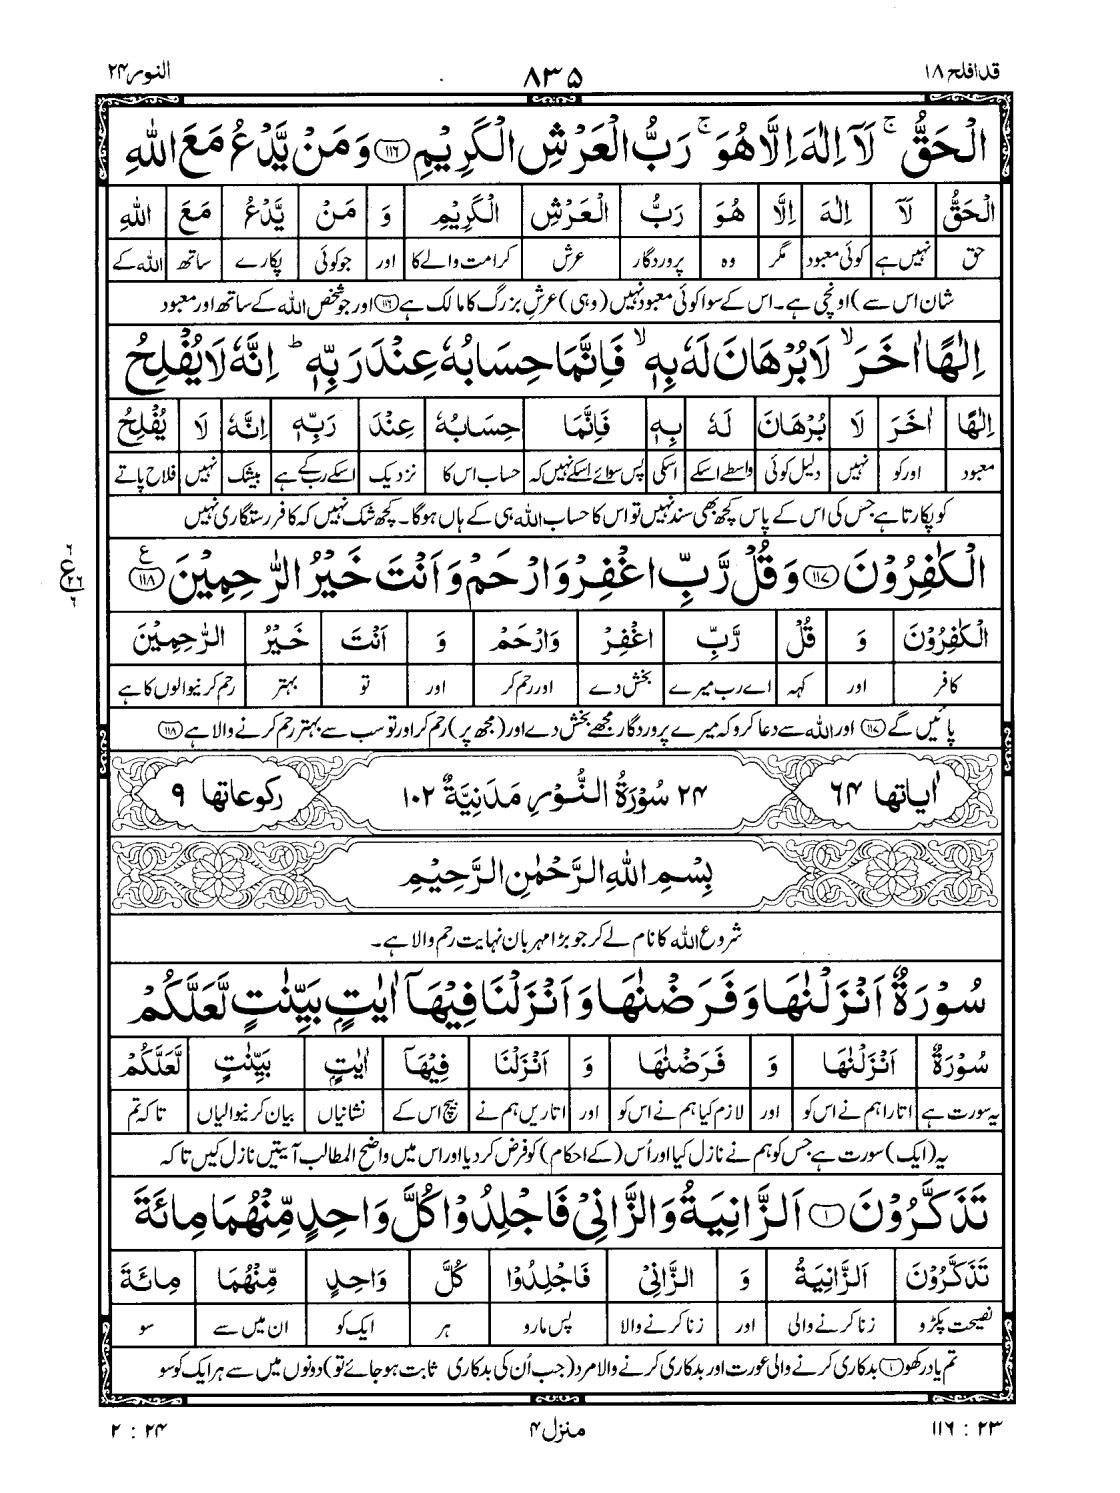 Quran Surah 24 النور An Nur Urdu Translation Tarjuma Word To Word لفظی معنی Pdf By Daaiyat Ul Islam Issuu